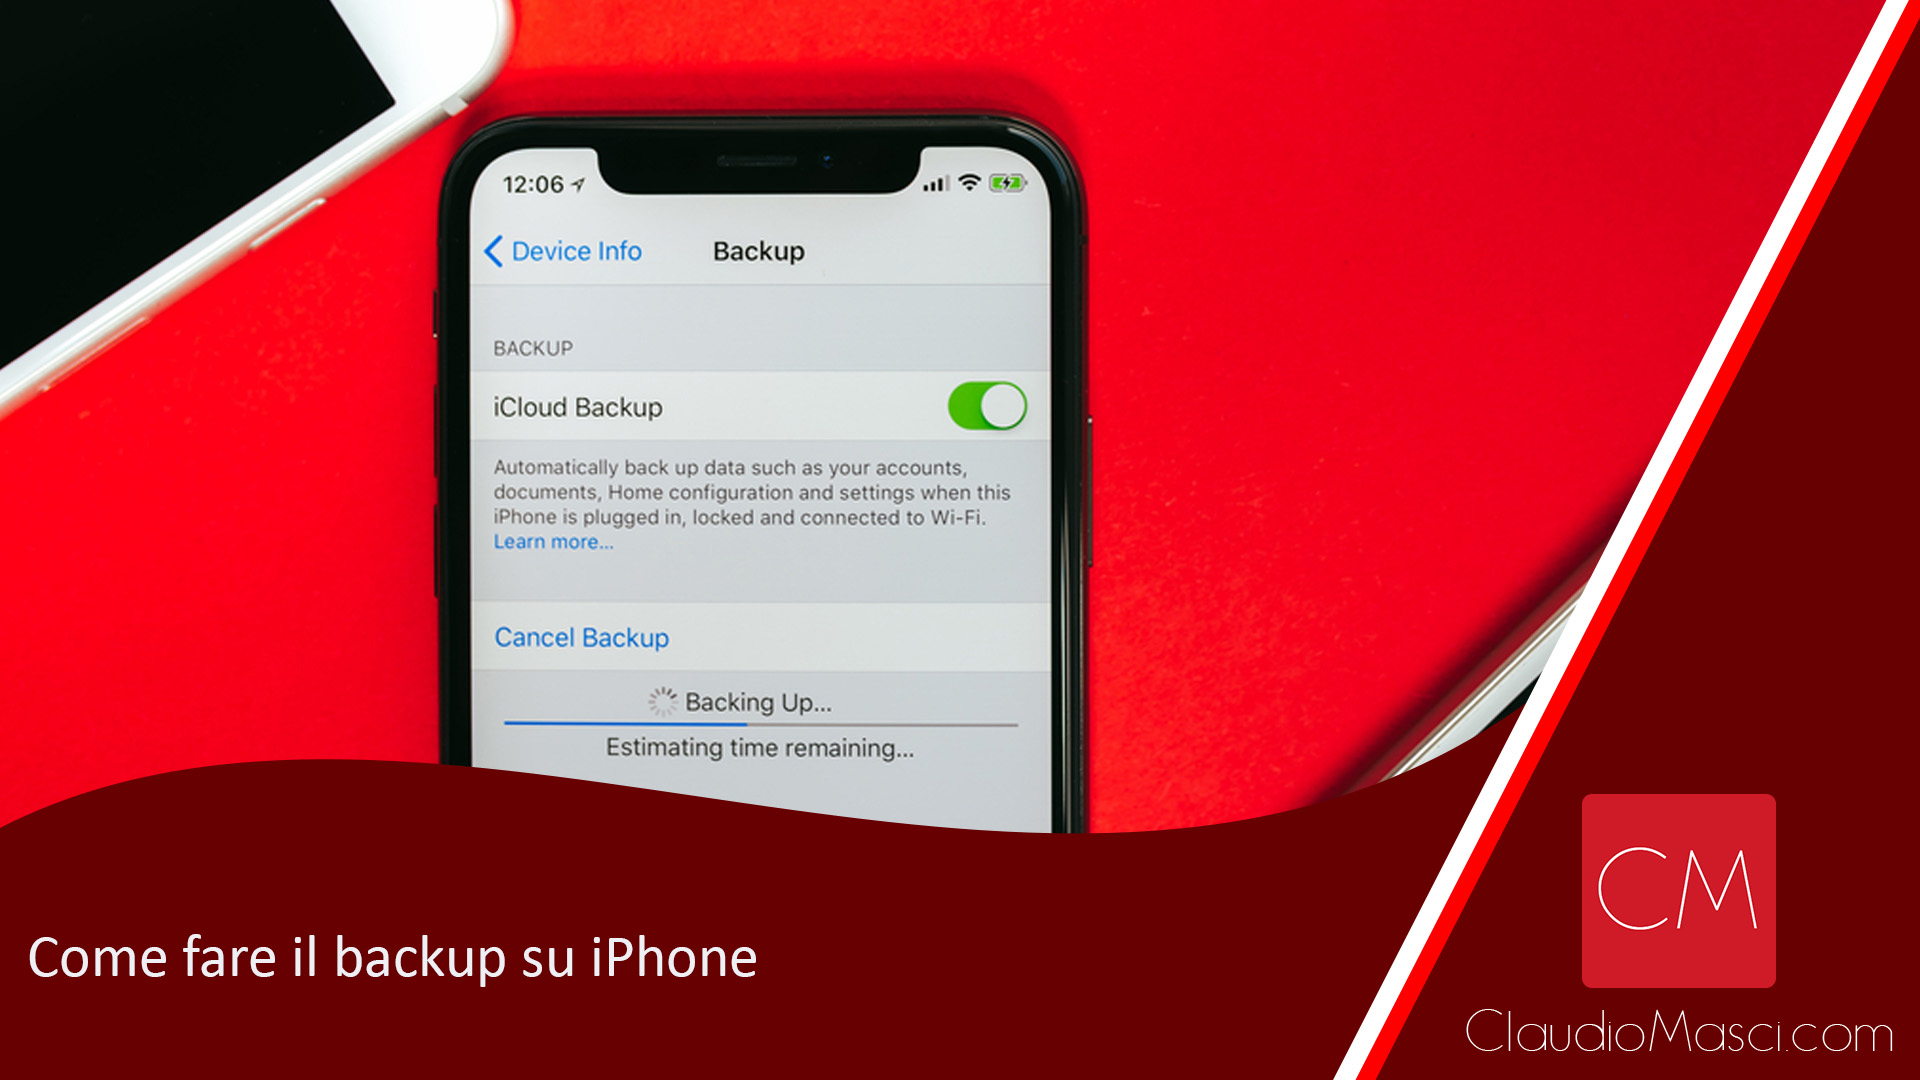 Come fare il backup su iPhone